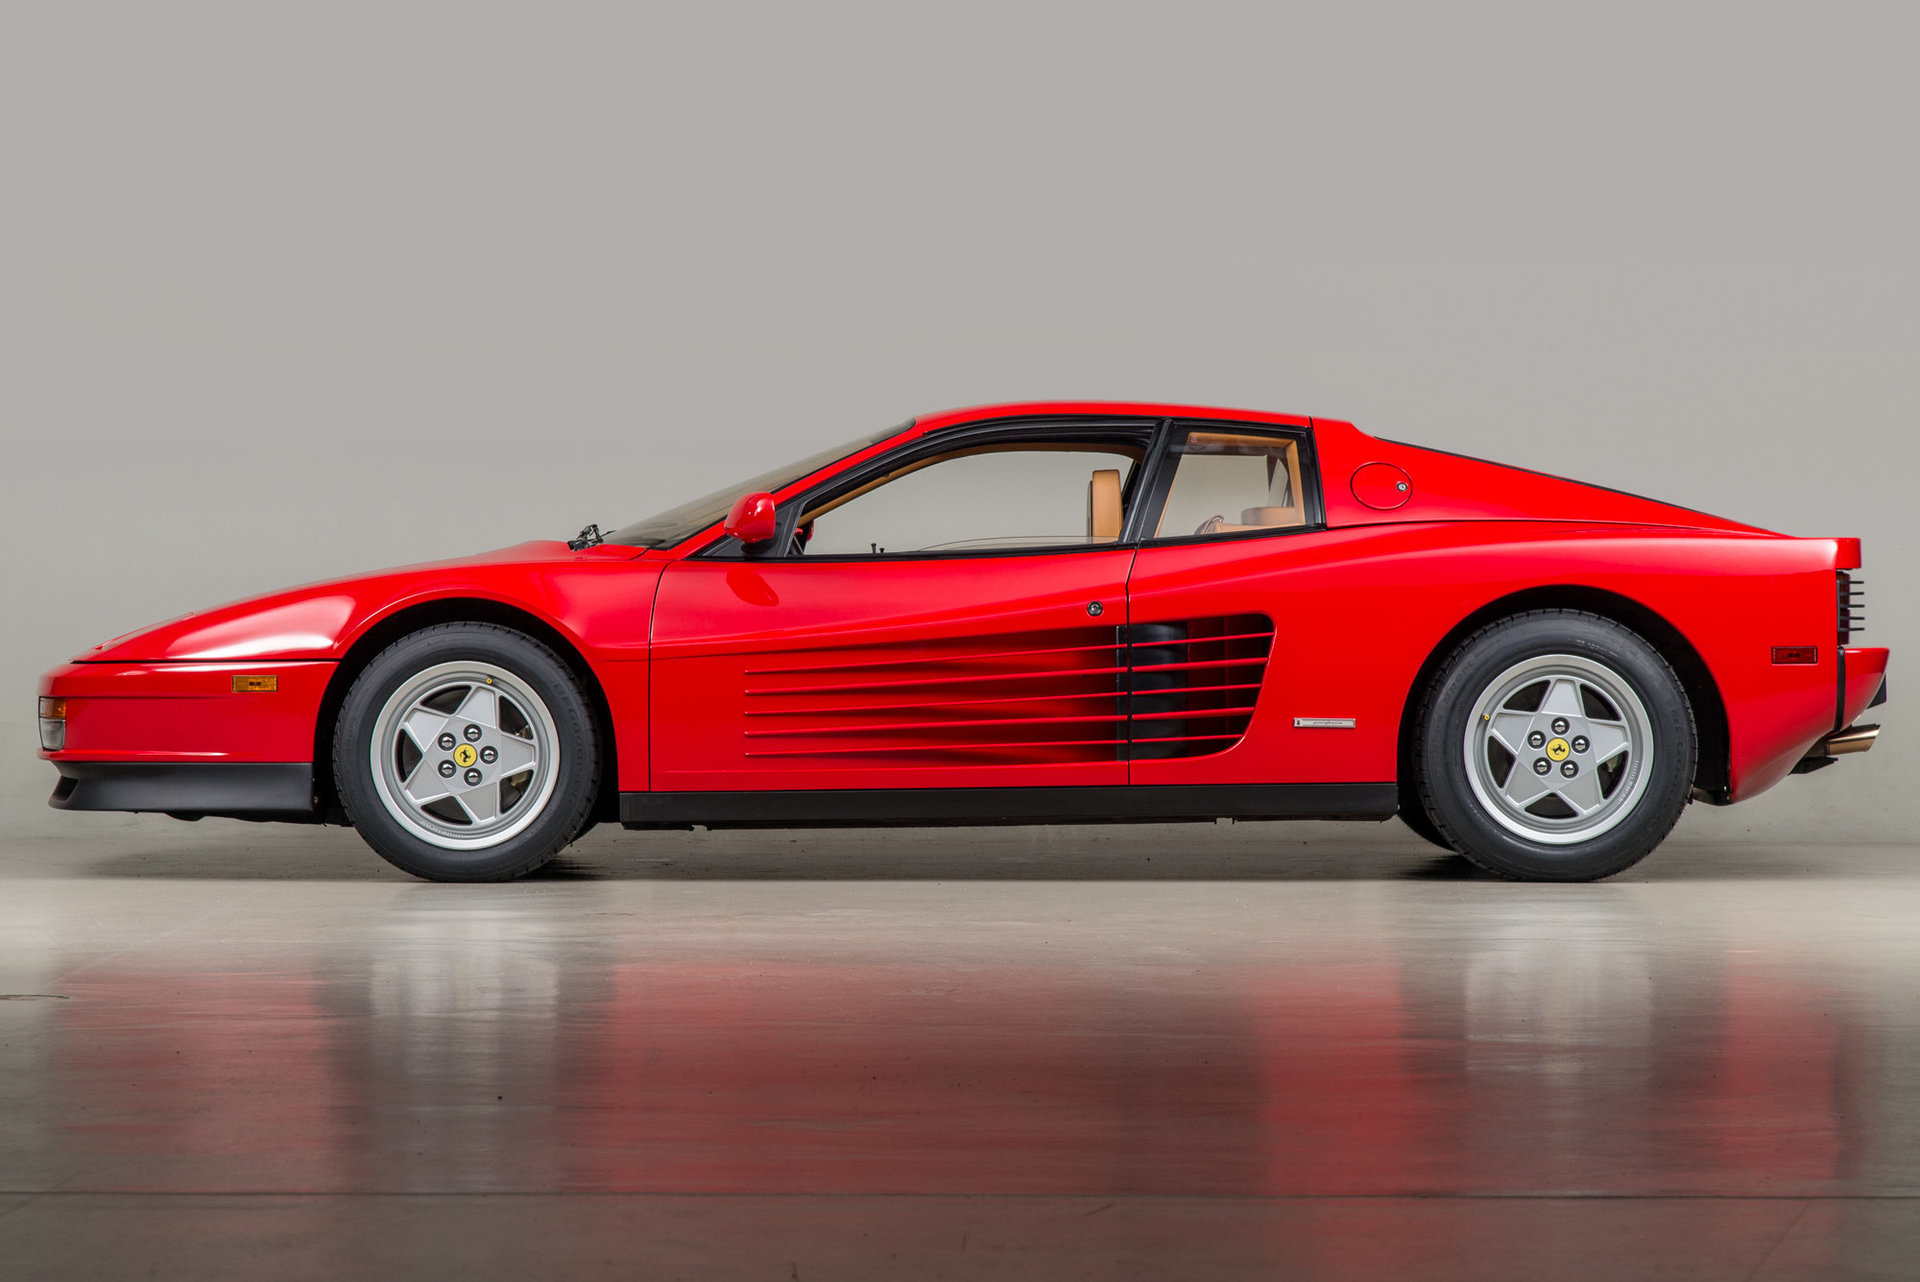 rm sale videos for sothebys sotheby testarossa ferrari hagerty icons breakout icon s from sales articles